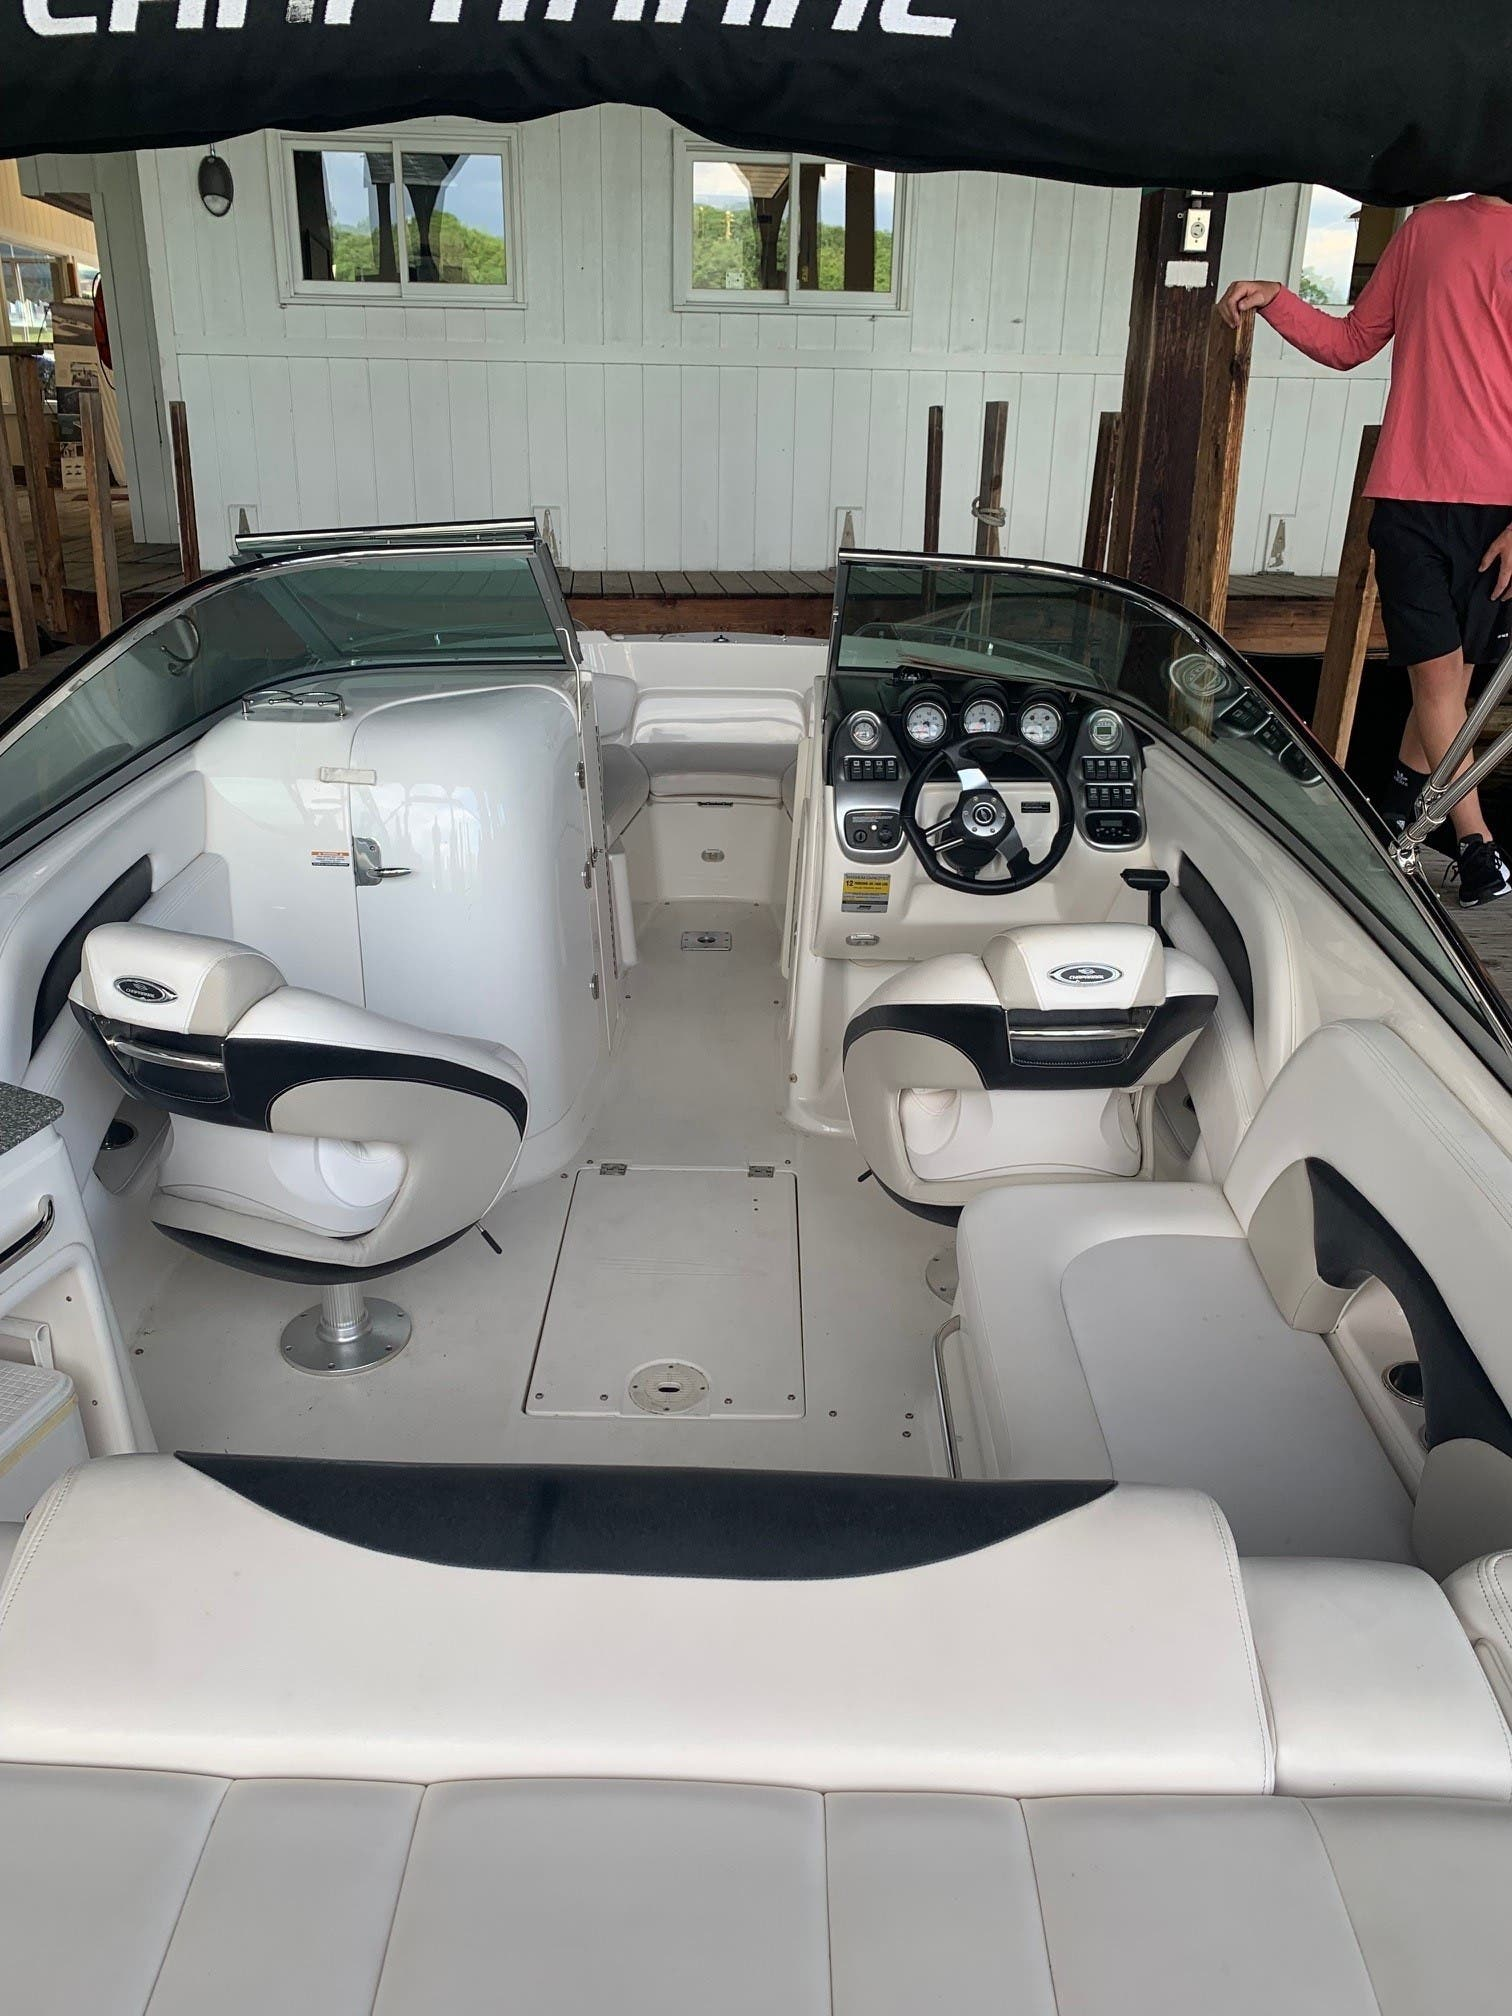 2007 Chaparral boat for sale, model of the boat is 236 SSX & Image # 3 of 7